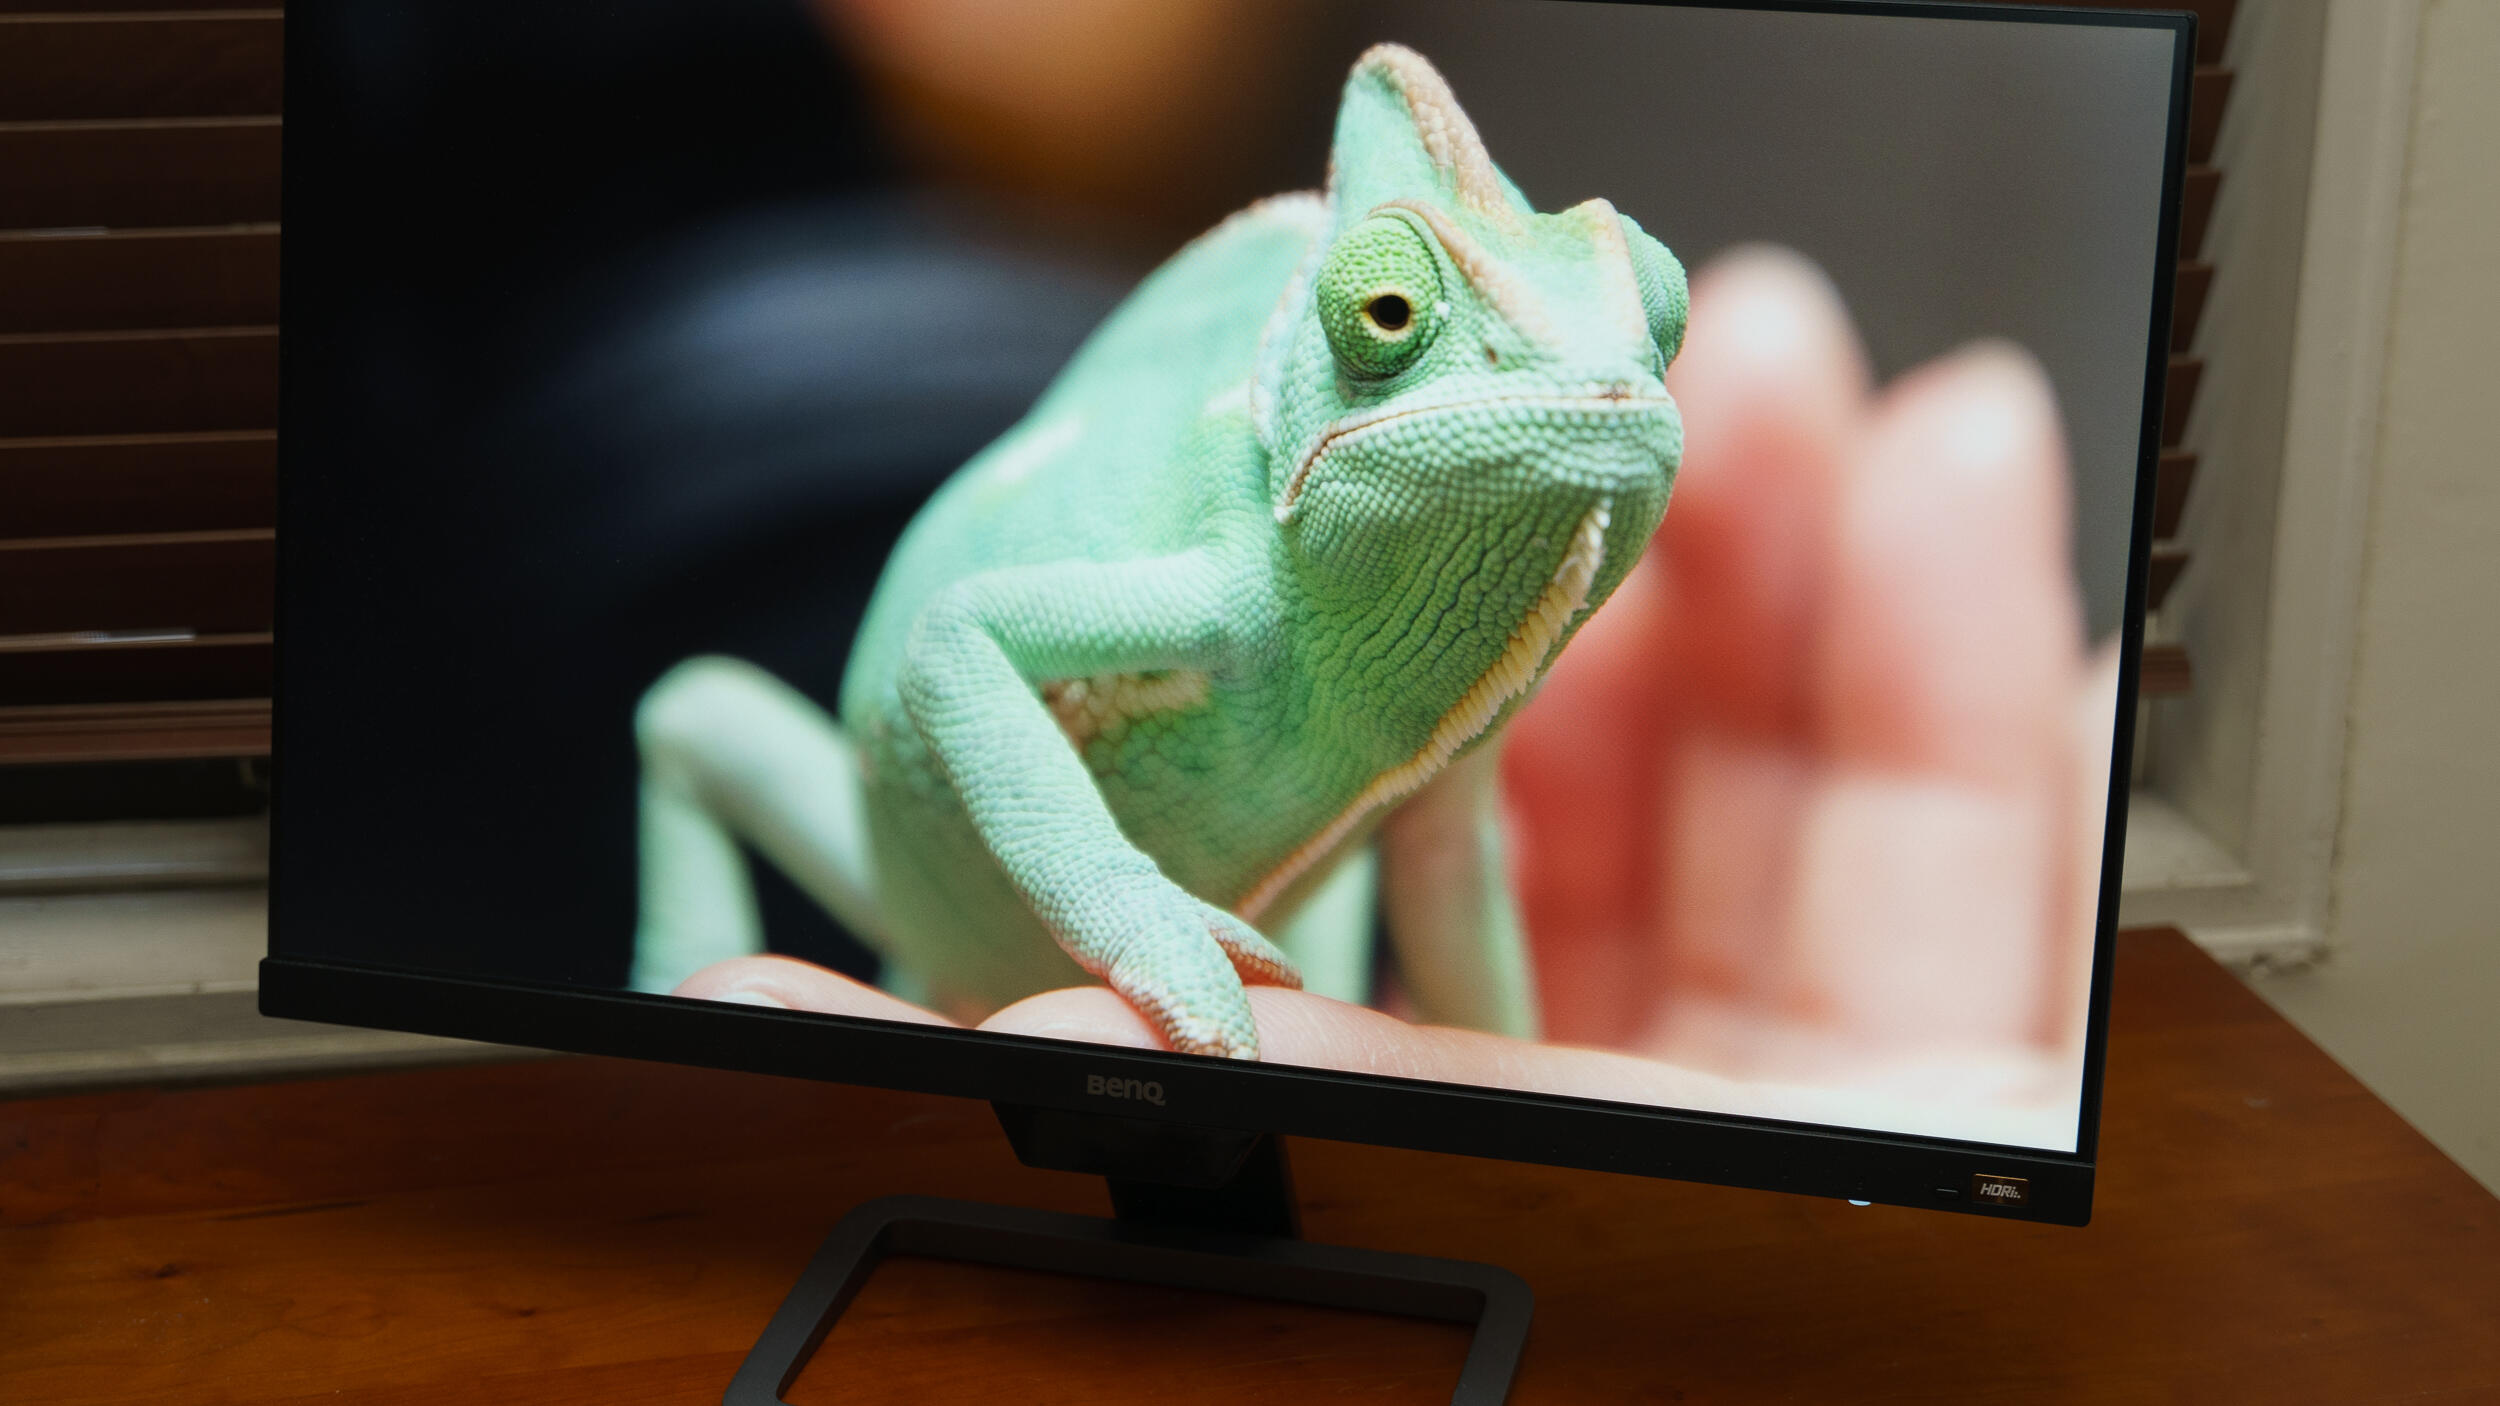 Best monitor under $200 you can get for 2021